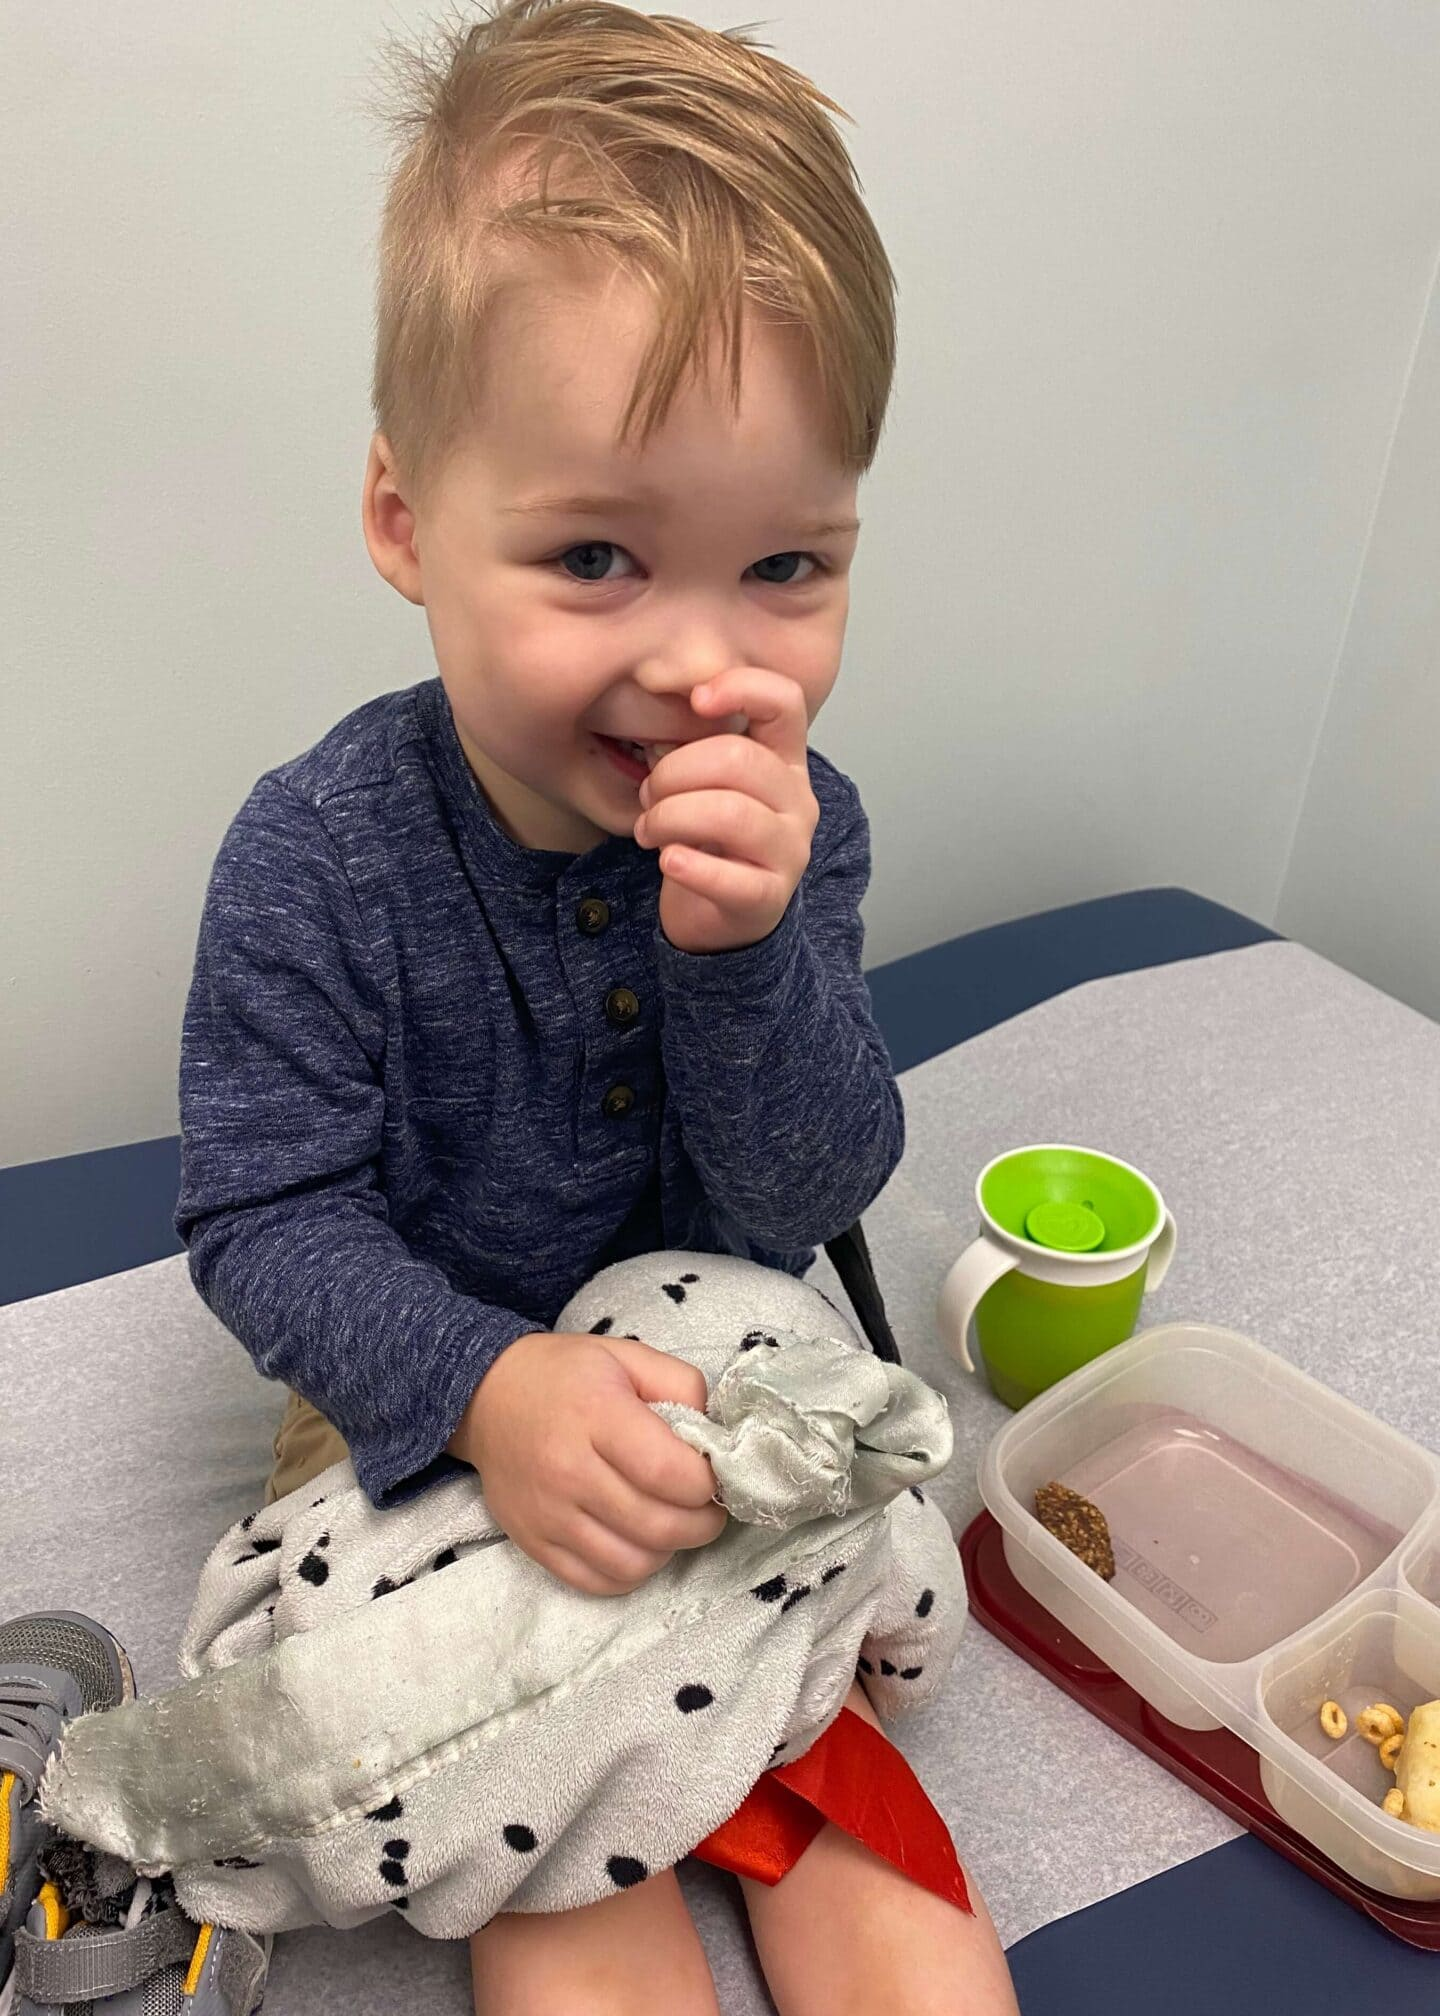 Spear's 2.5 Year Well Check Pediatrician Visit